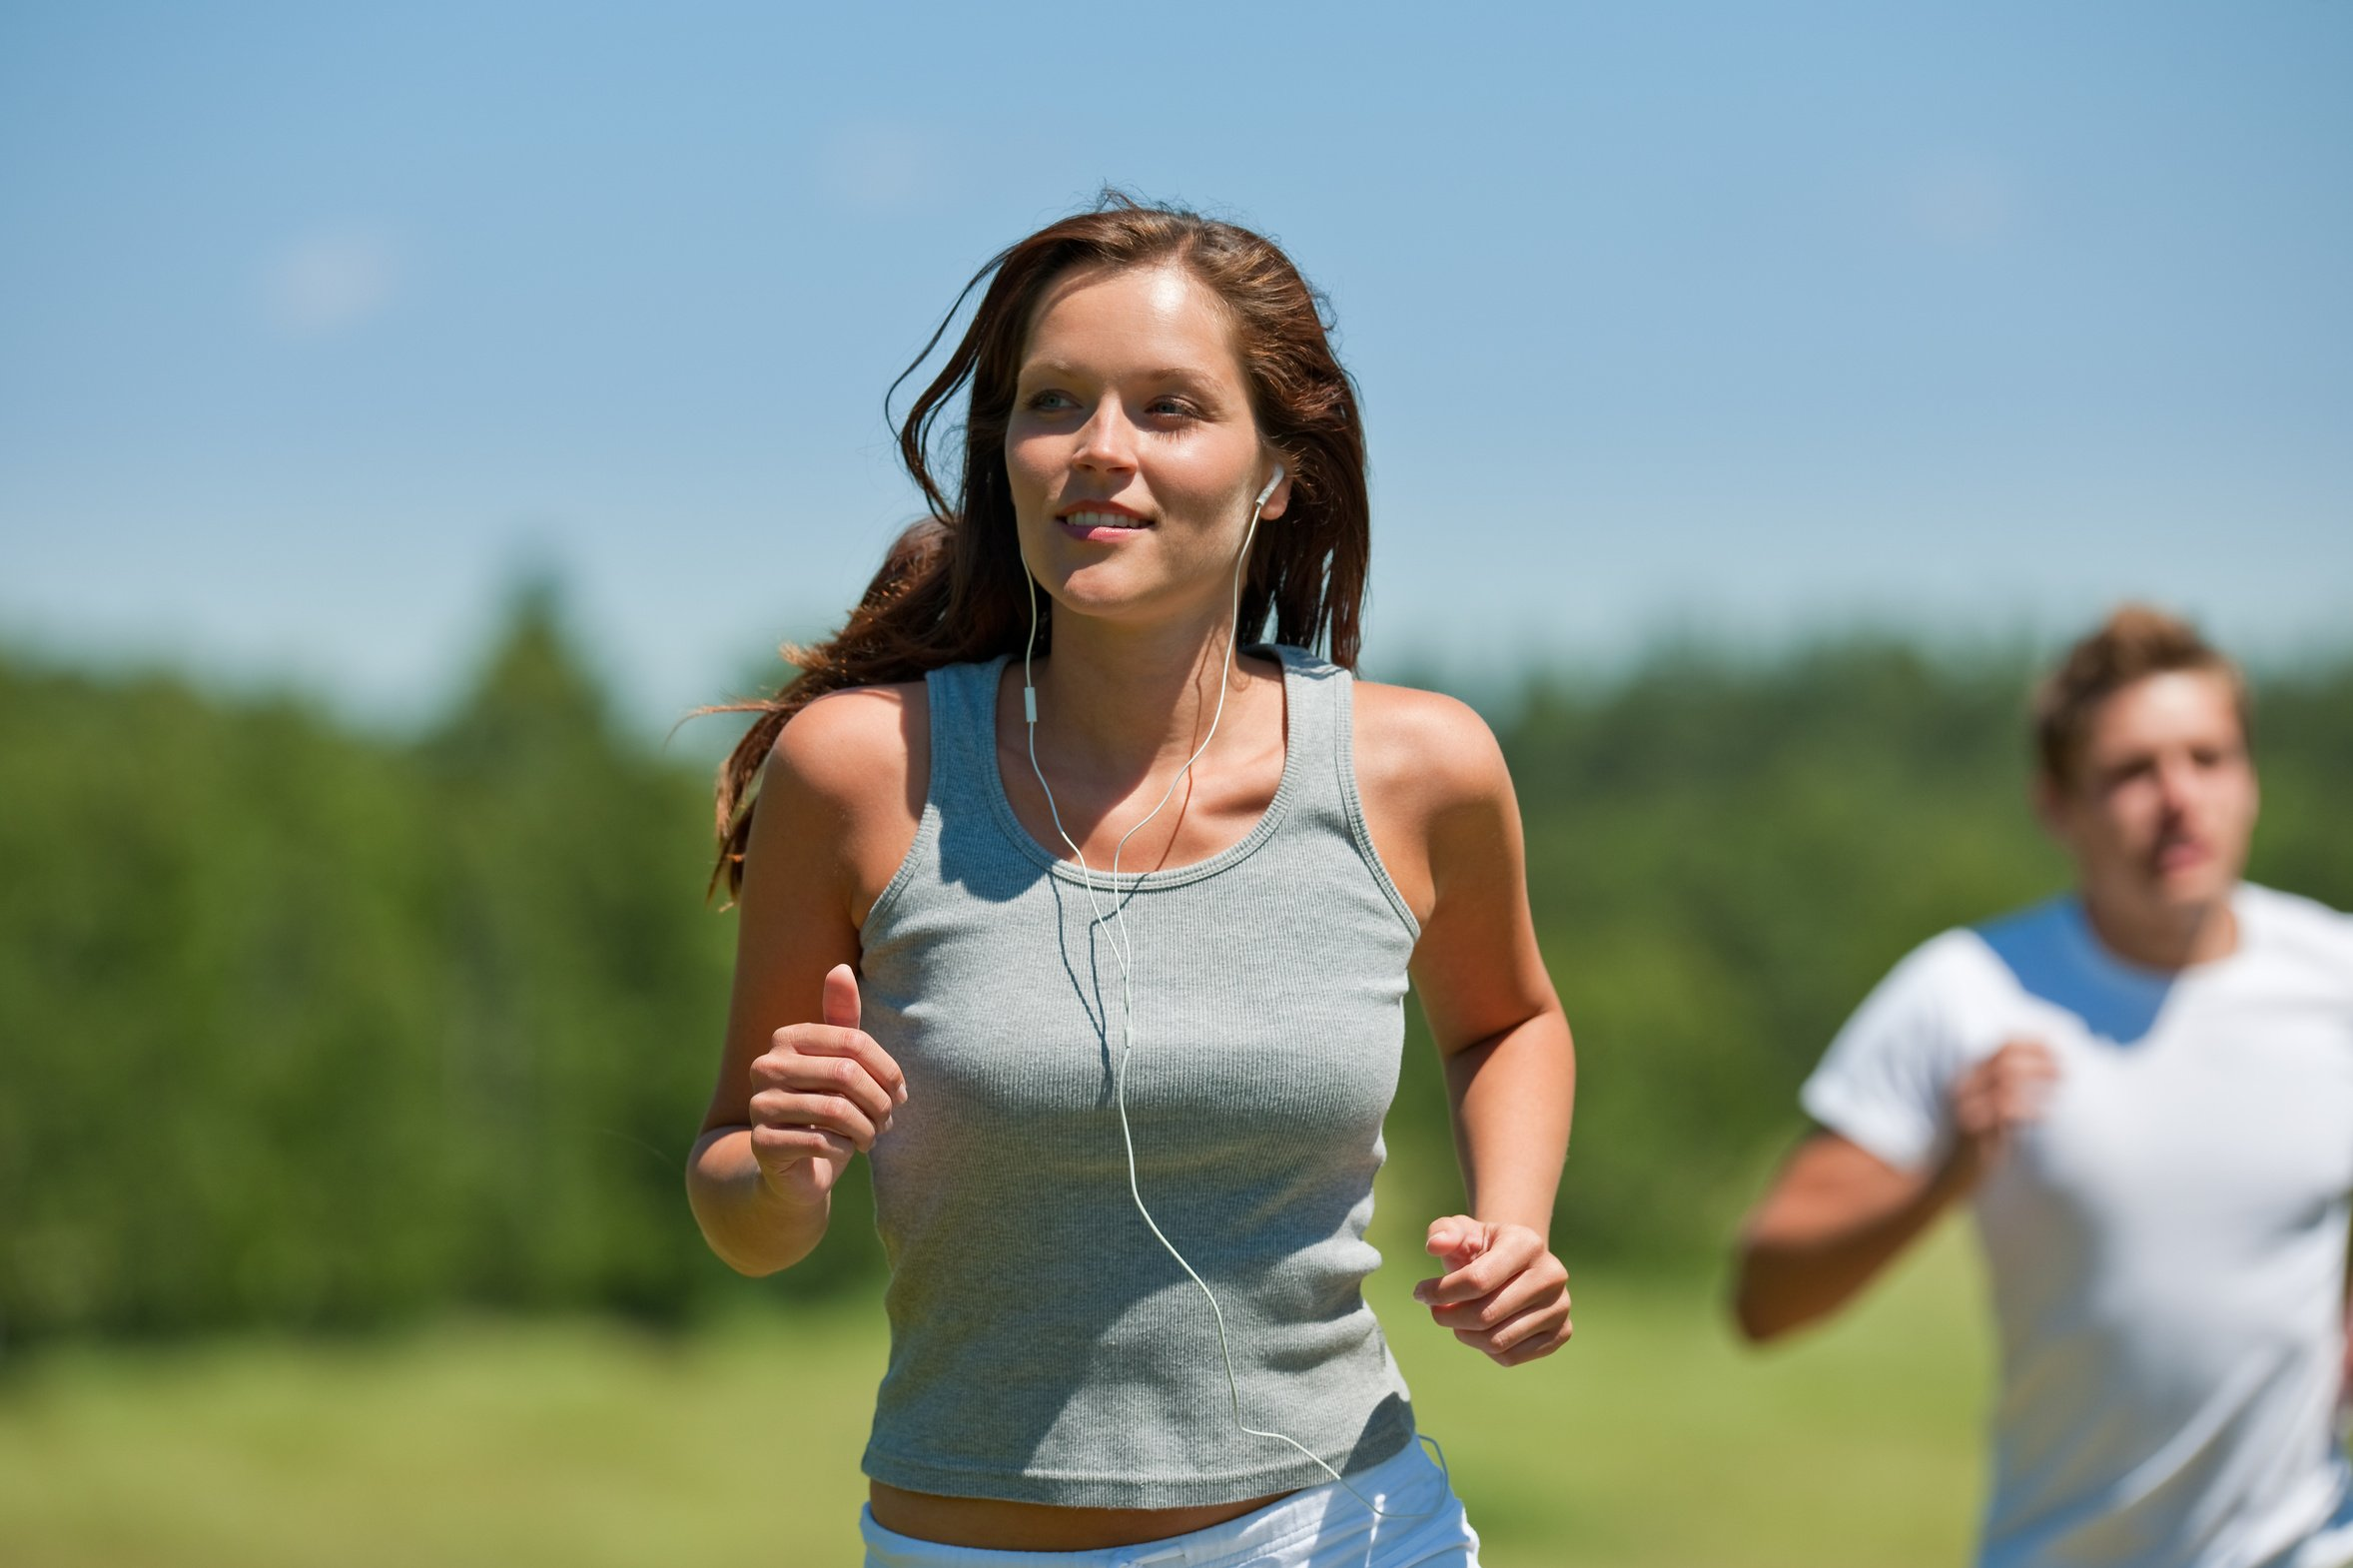 active-couple-headphones-healthy-jogging-man-meadow-music-nature-outdoors-people-running-sport-sportive-spring-summer-two-wellbeing-woman